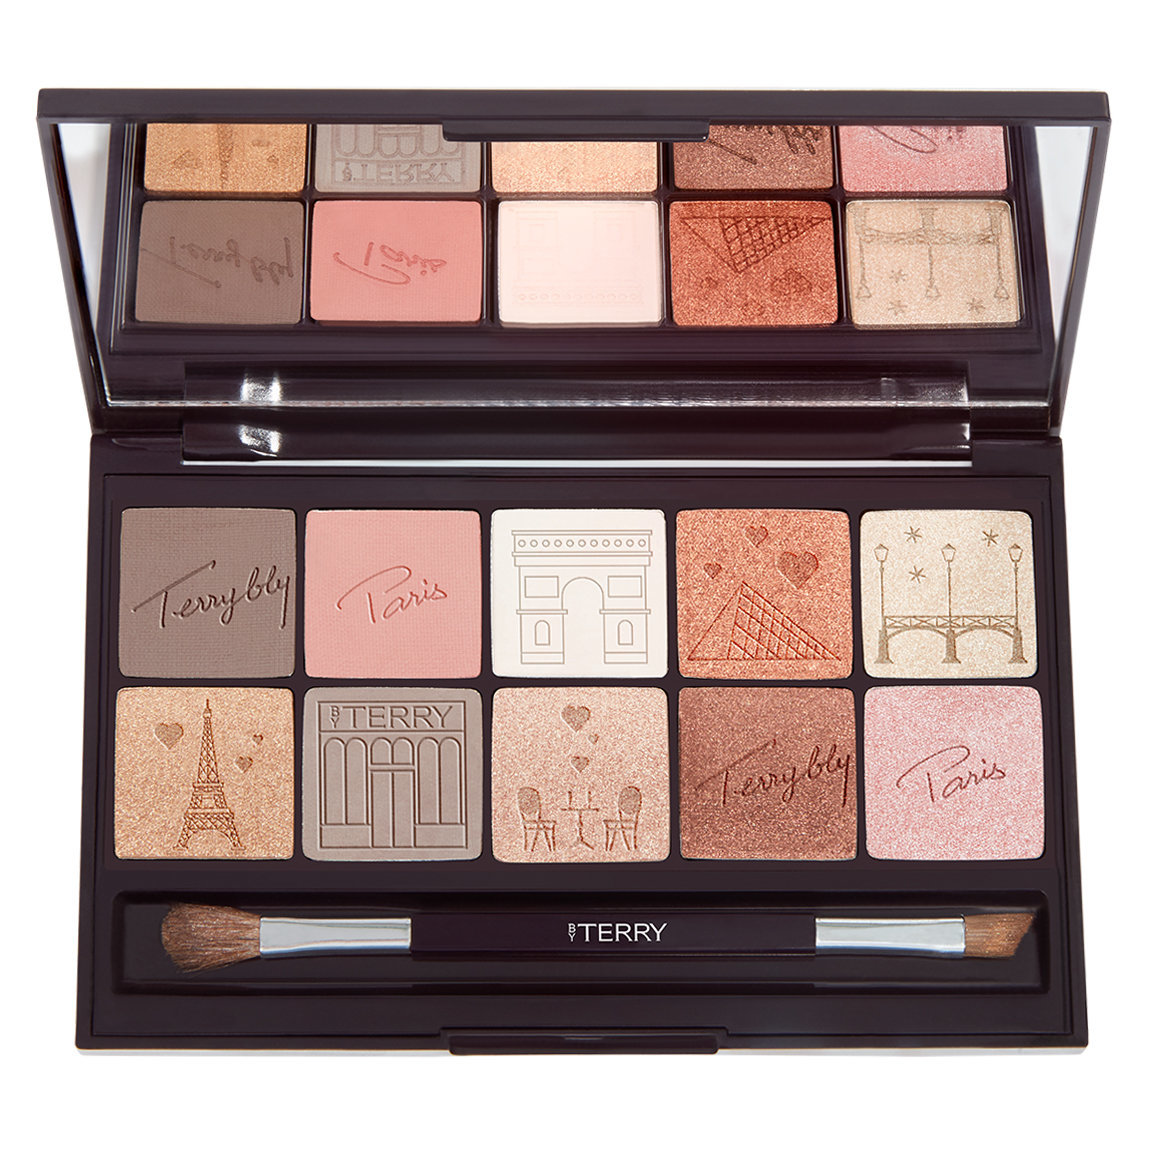 BY TERRY V.I.P Expert Palette Paris By Light product swatch.